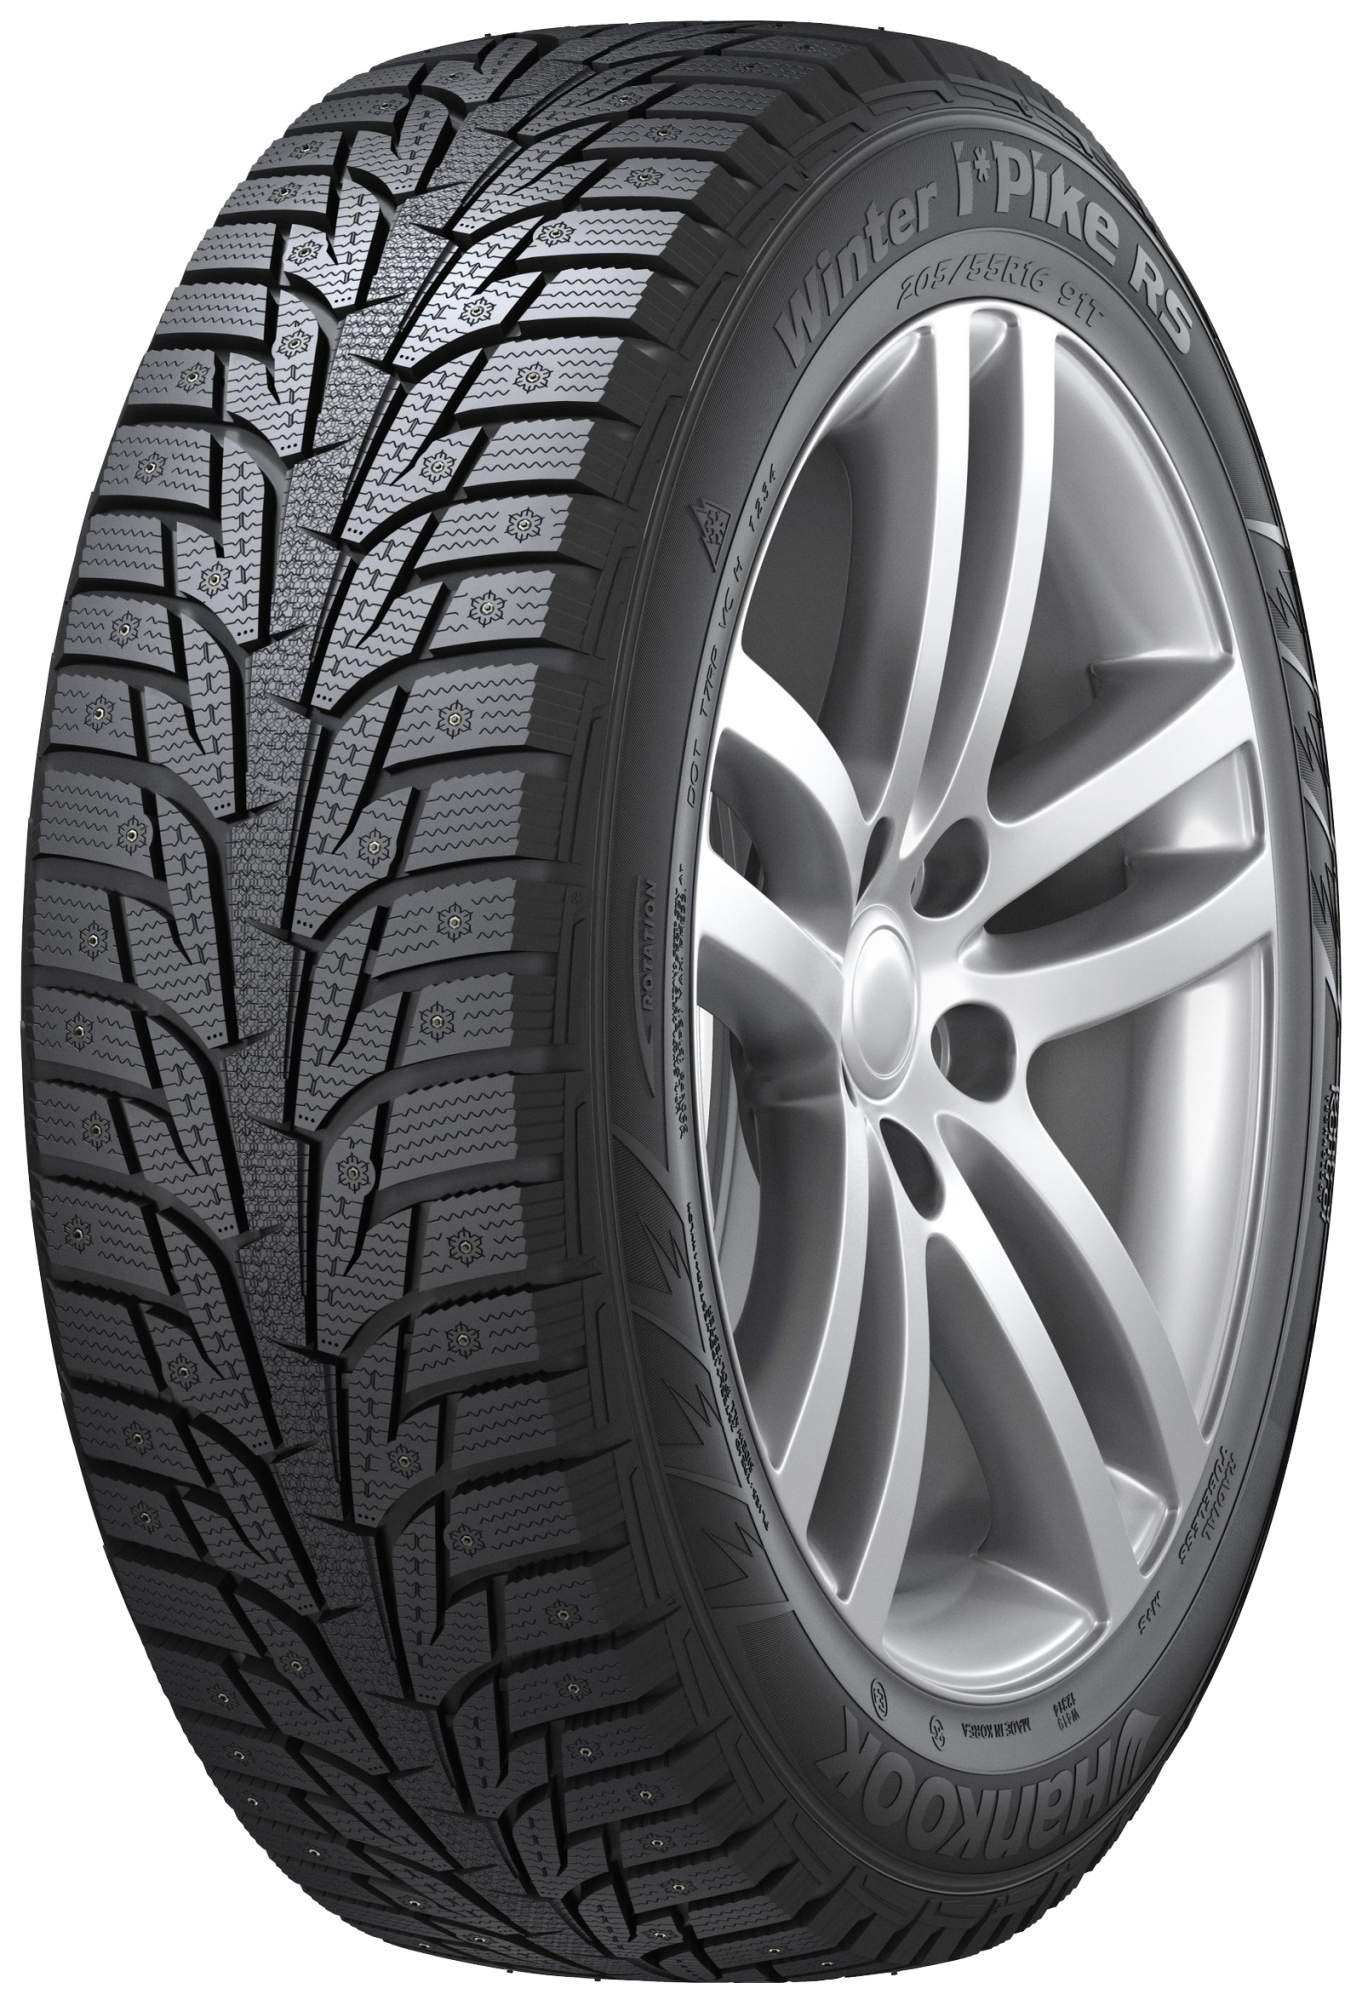 Автошина R18 245/40 Hankook i*Pike RS W419 97Т XL (шип)